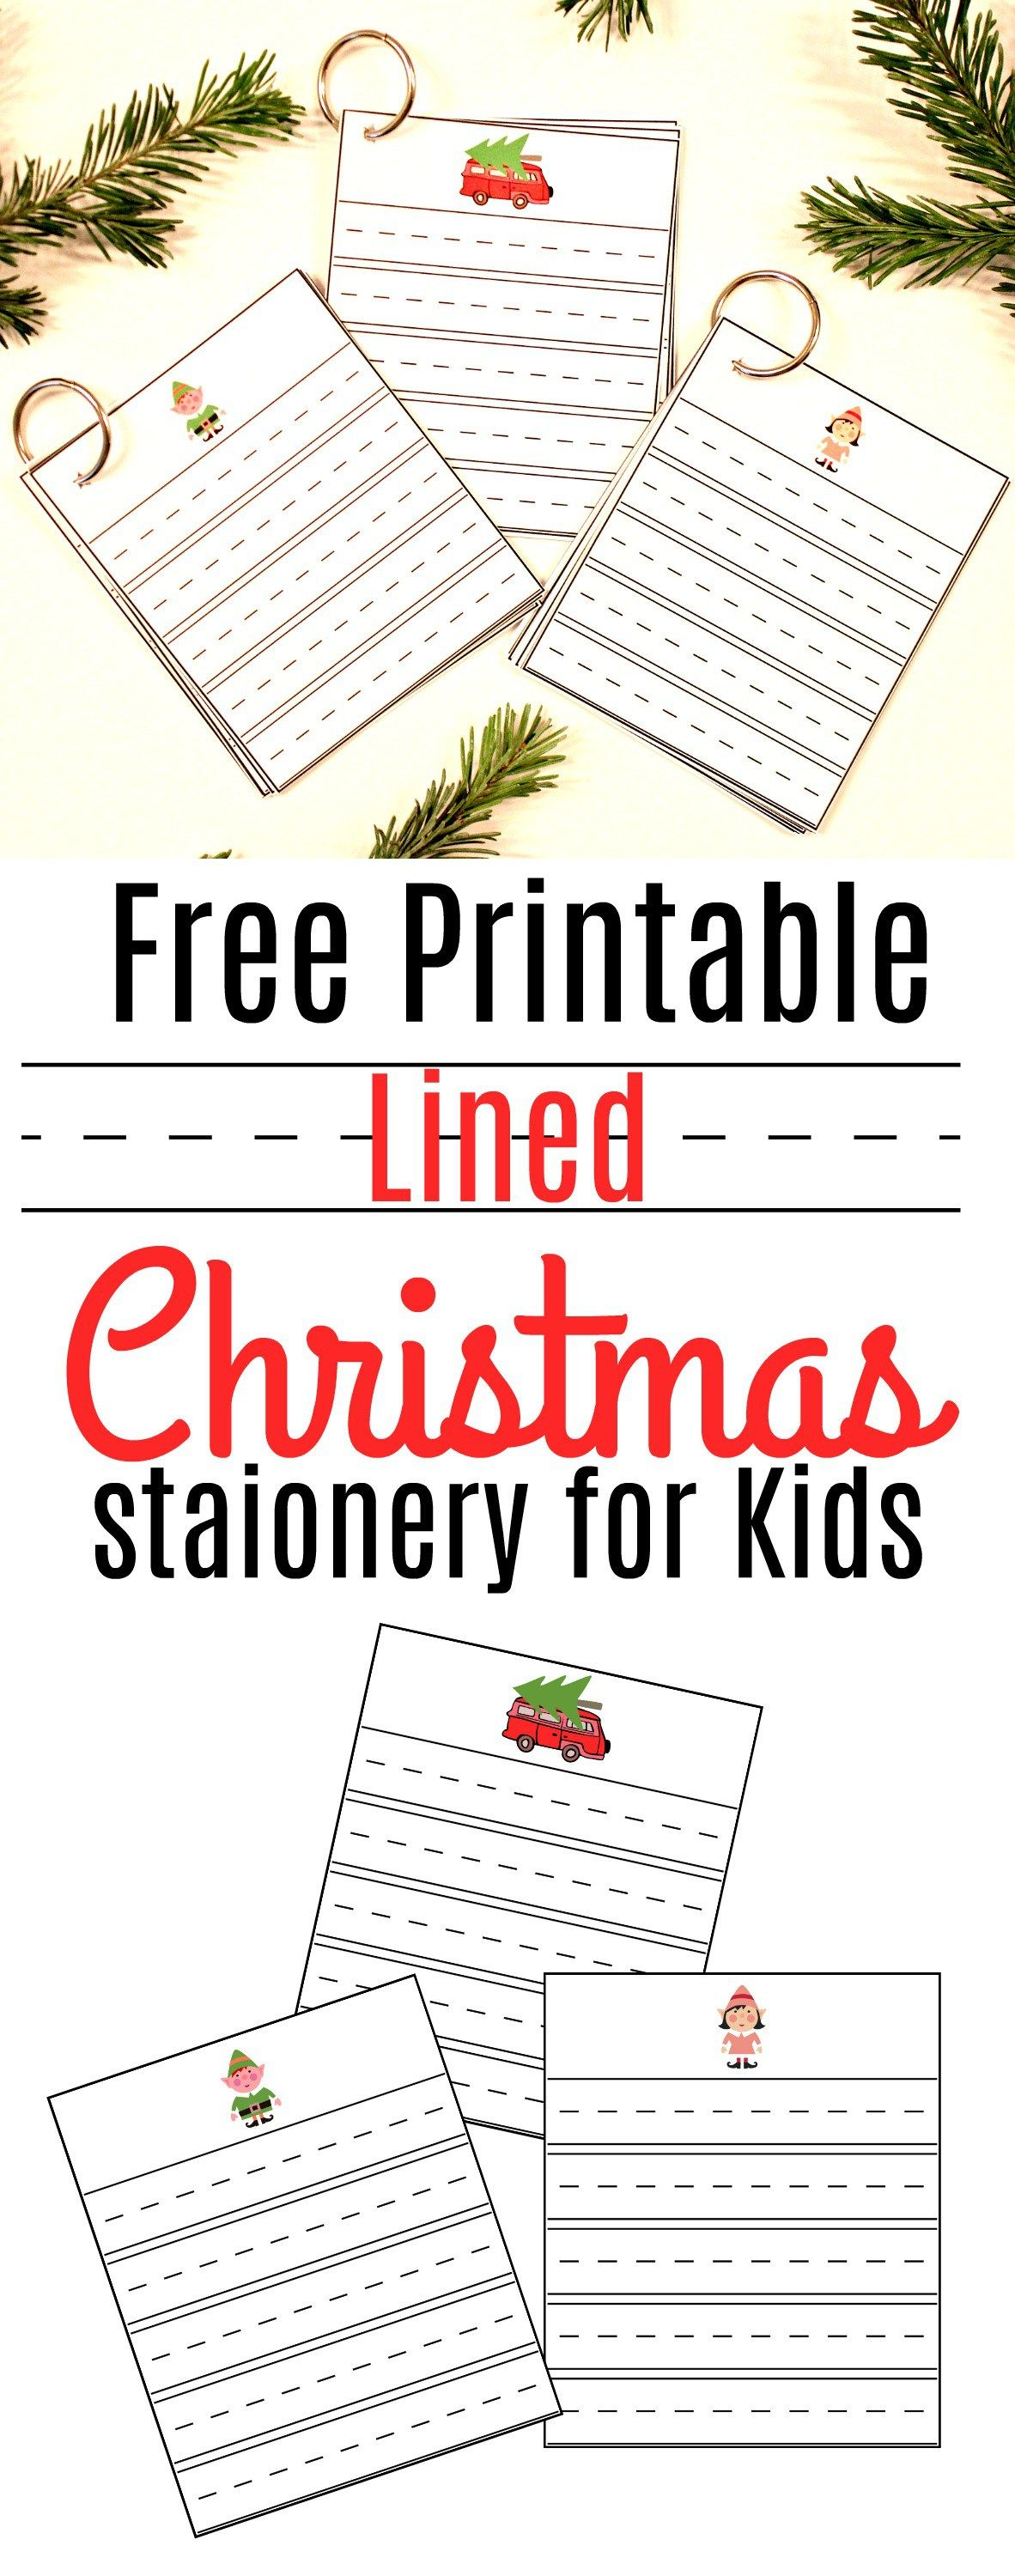 8 Pack Christmas Printables For Kids